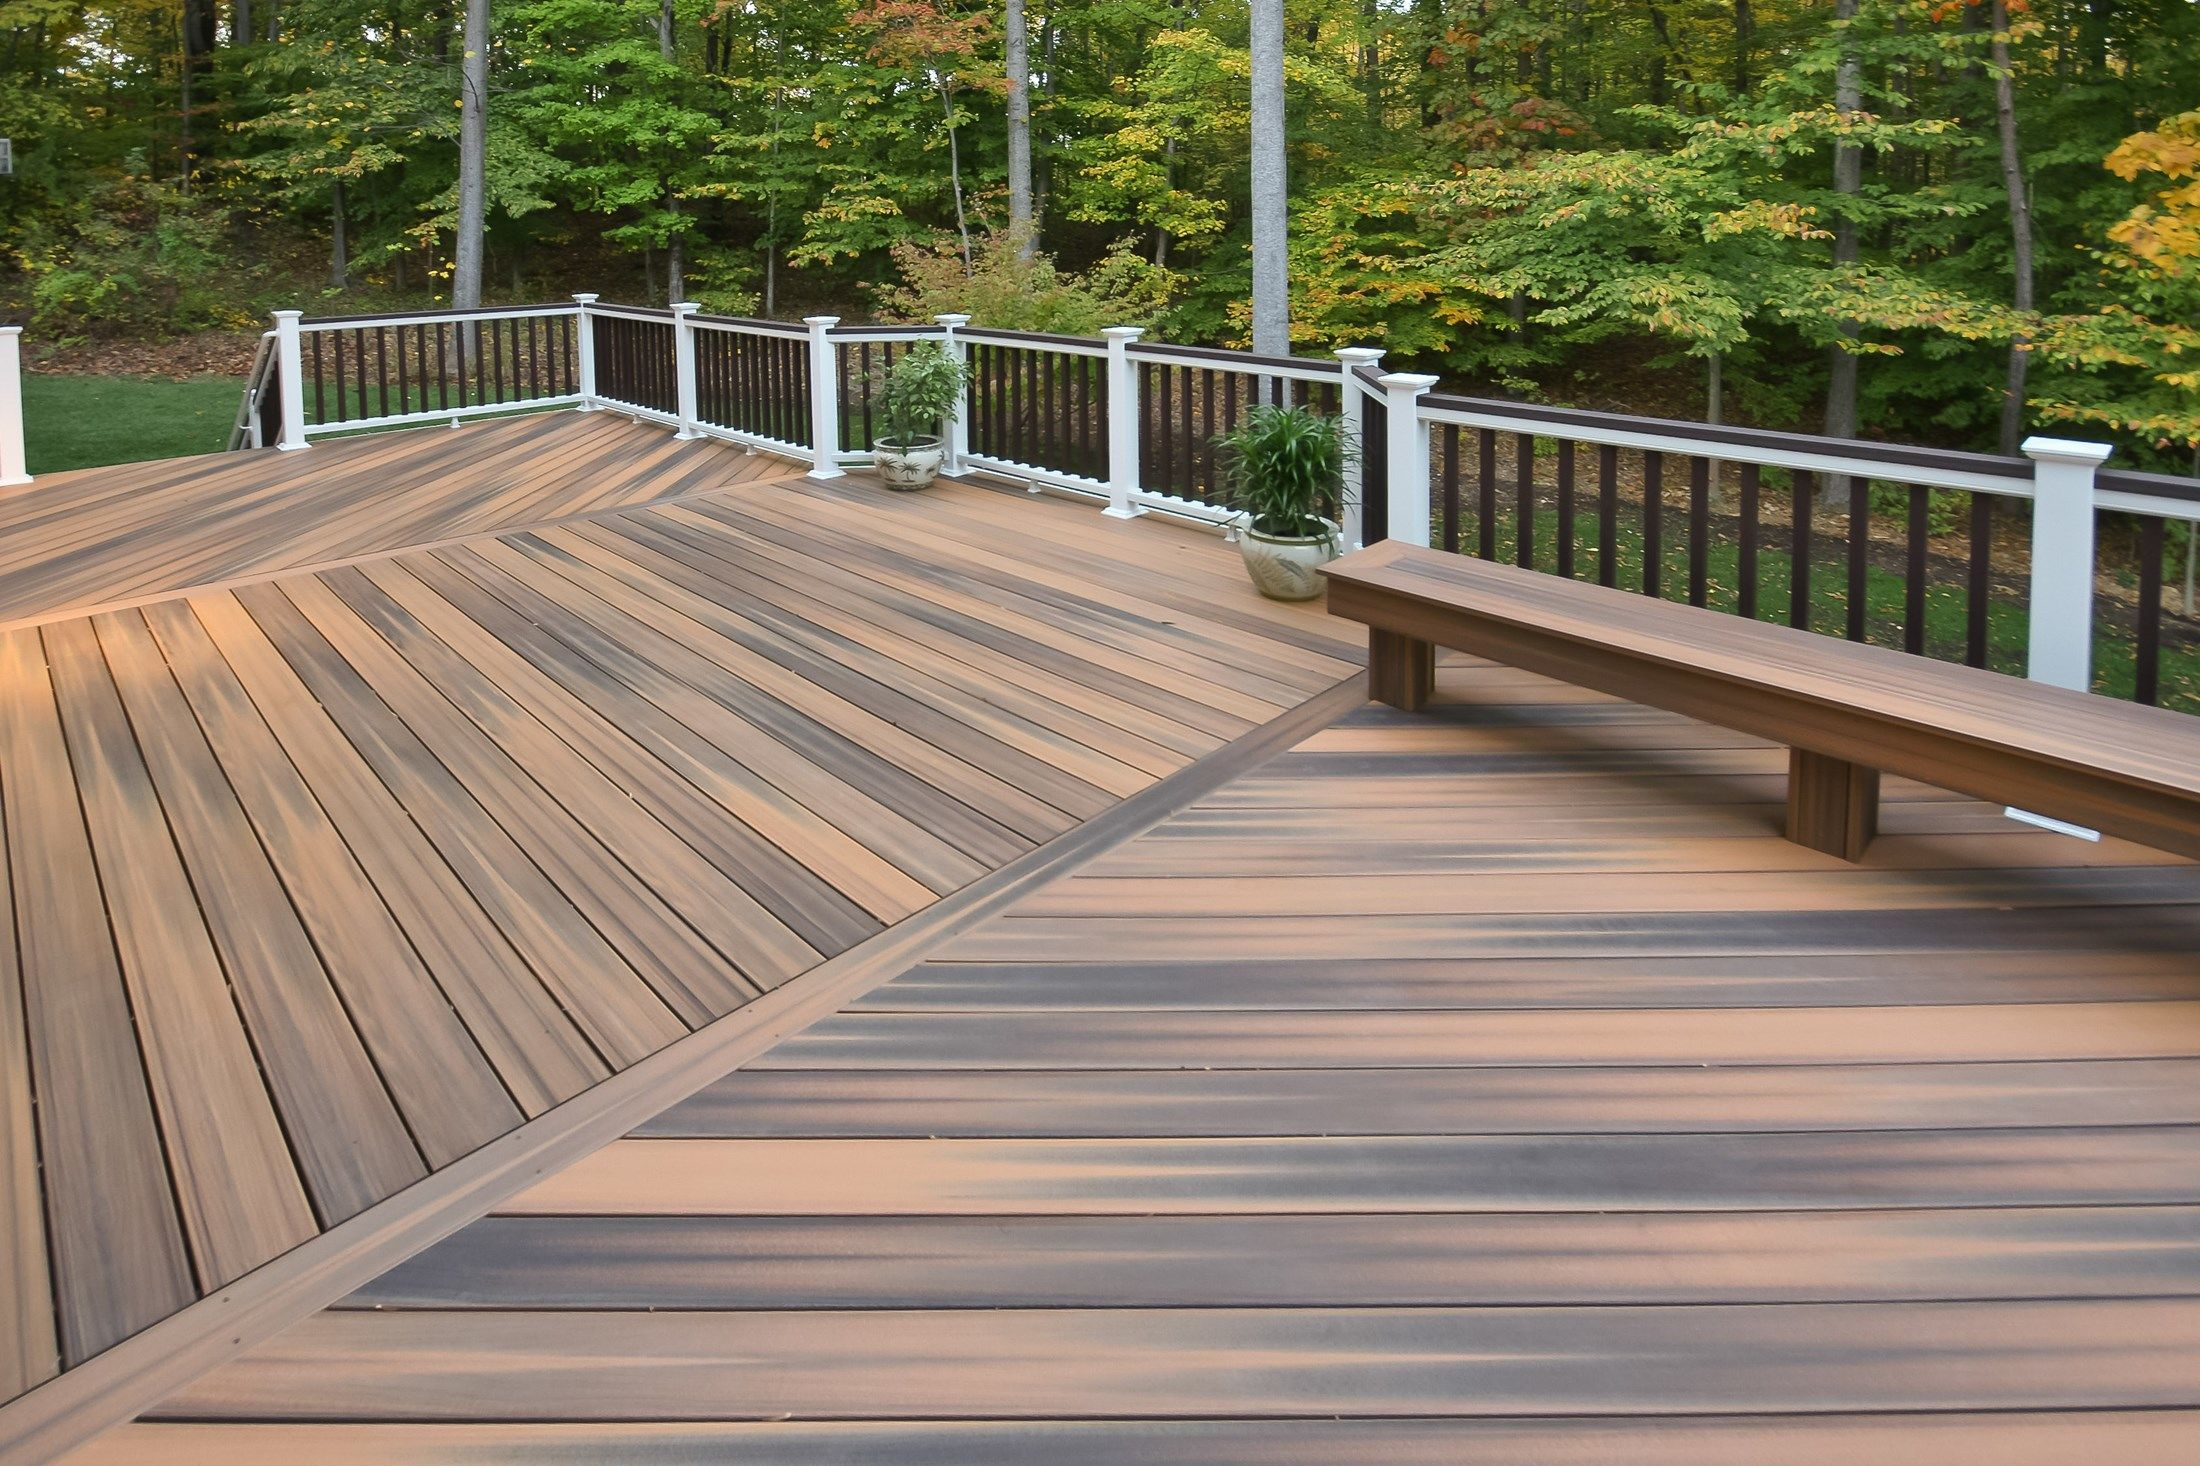 Decks.com. Controlling Decking Seams